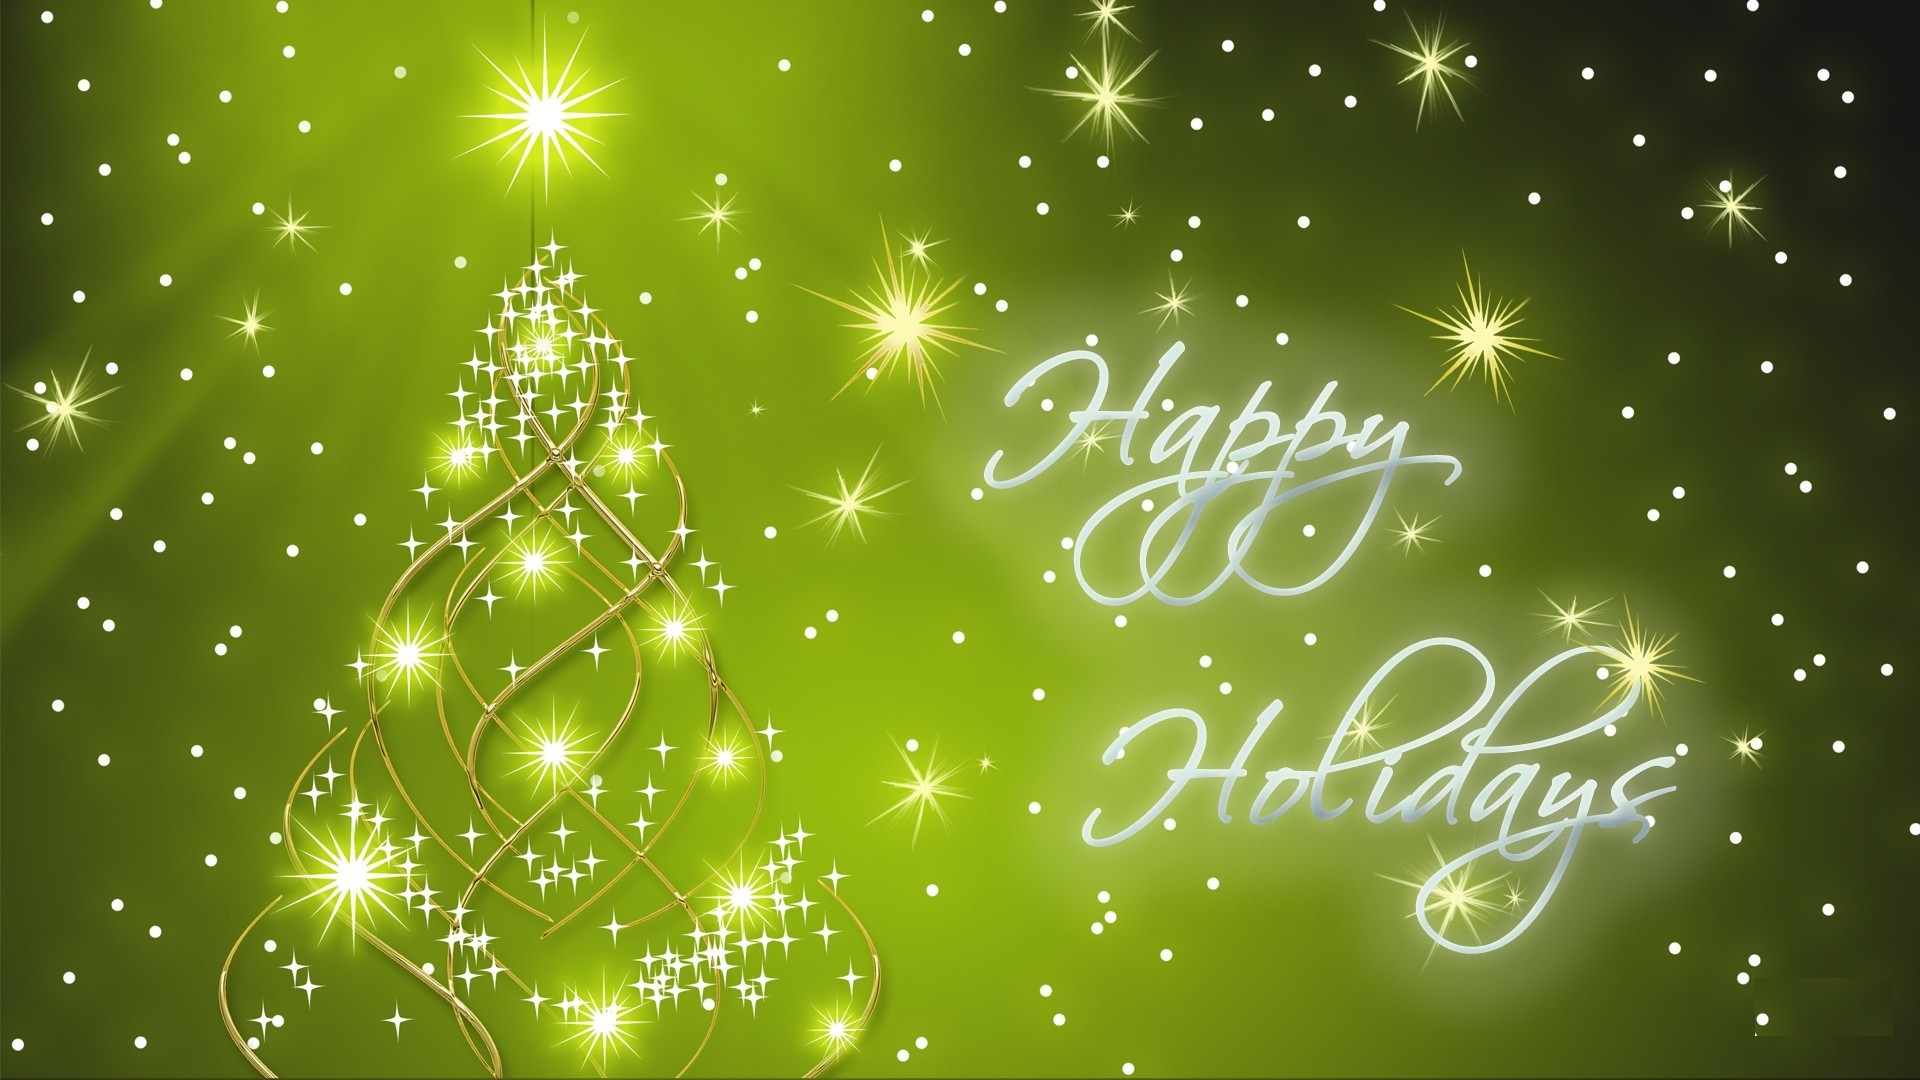 Res: 1920x1080, Happy holiday wallpapers HD pictures images photos.